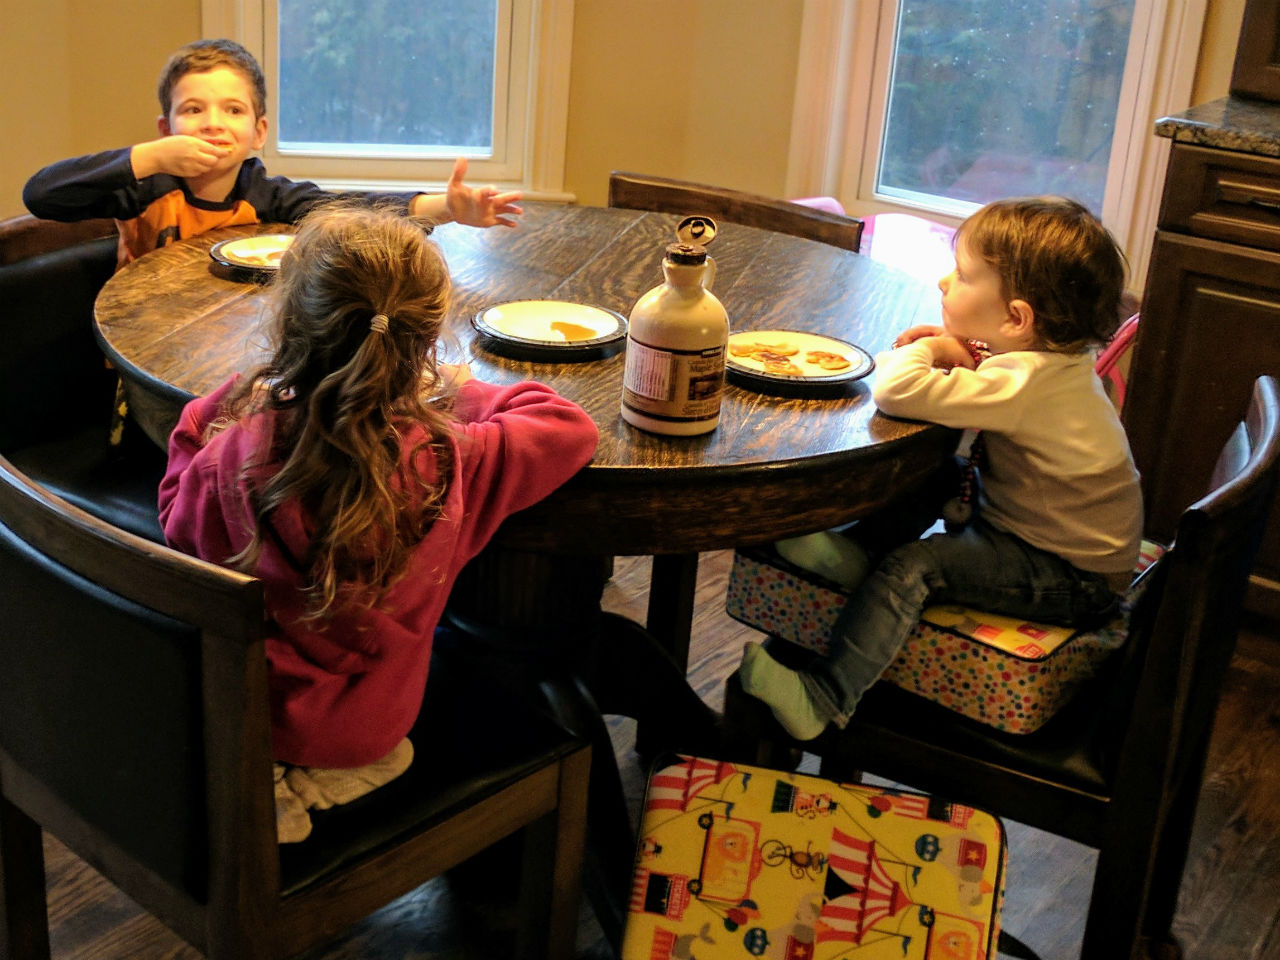 children eating pancakes at dinner table